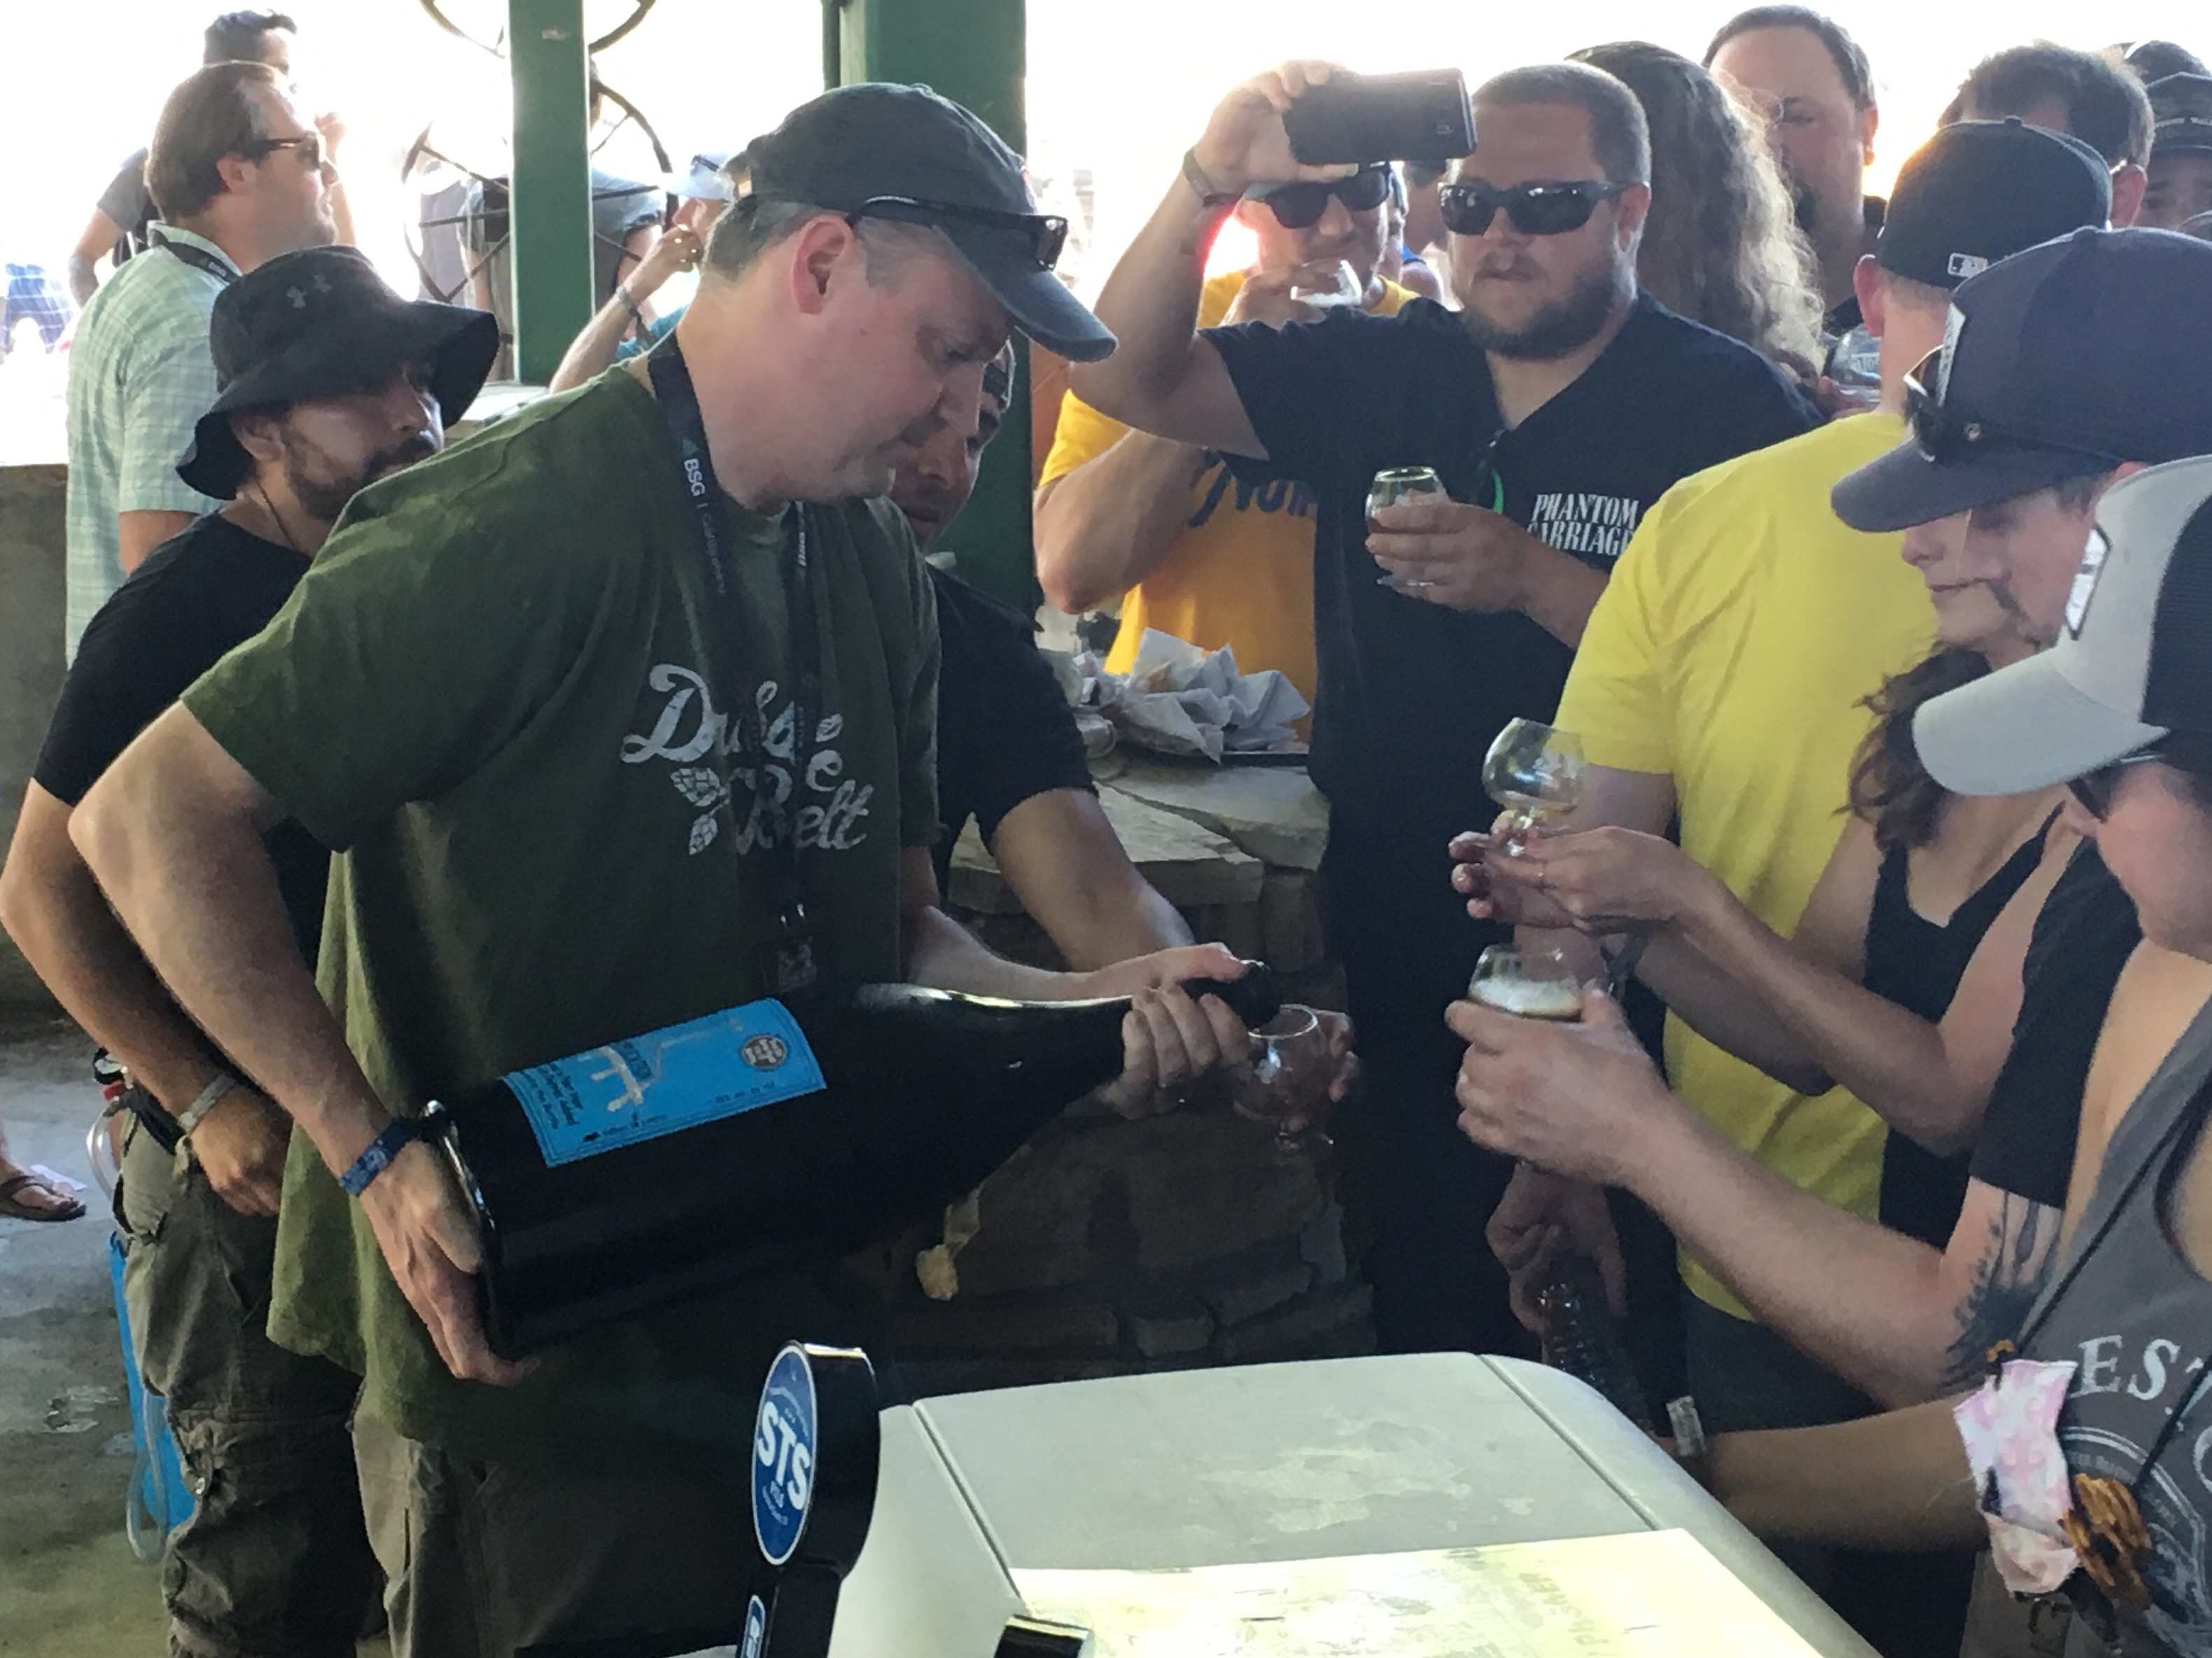 Vinnie Cilurzo pouring from one of the 6 liter bottles of 2009 Russian River Supplication during the 2016 Firestone Walker Invitational Beer Fest.